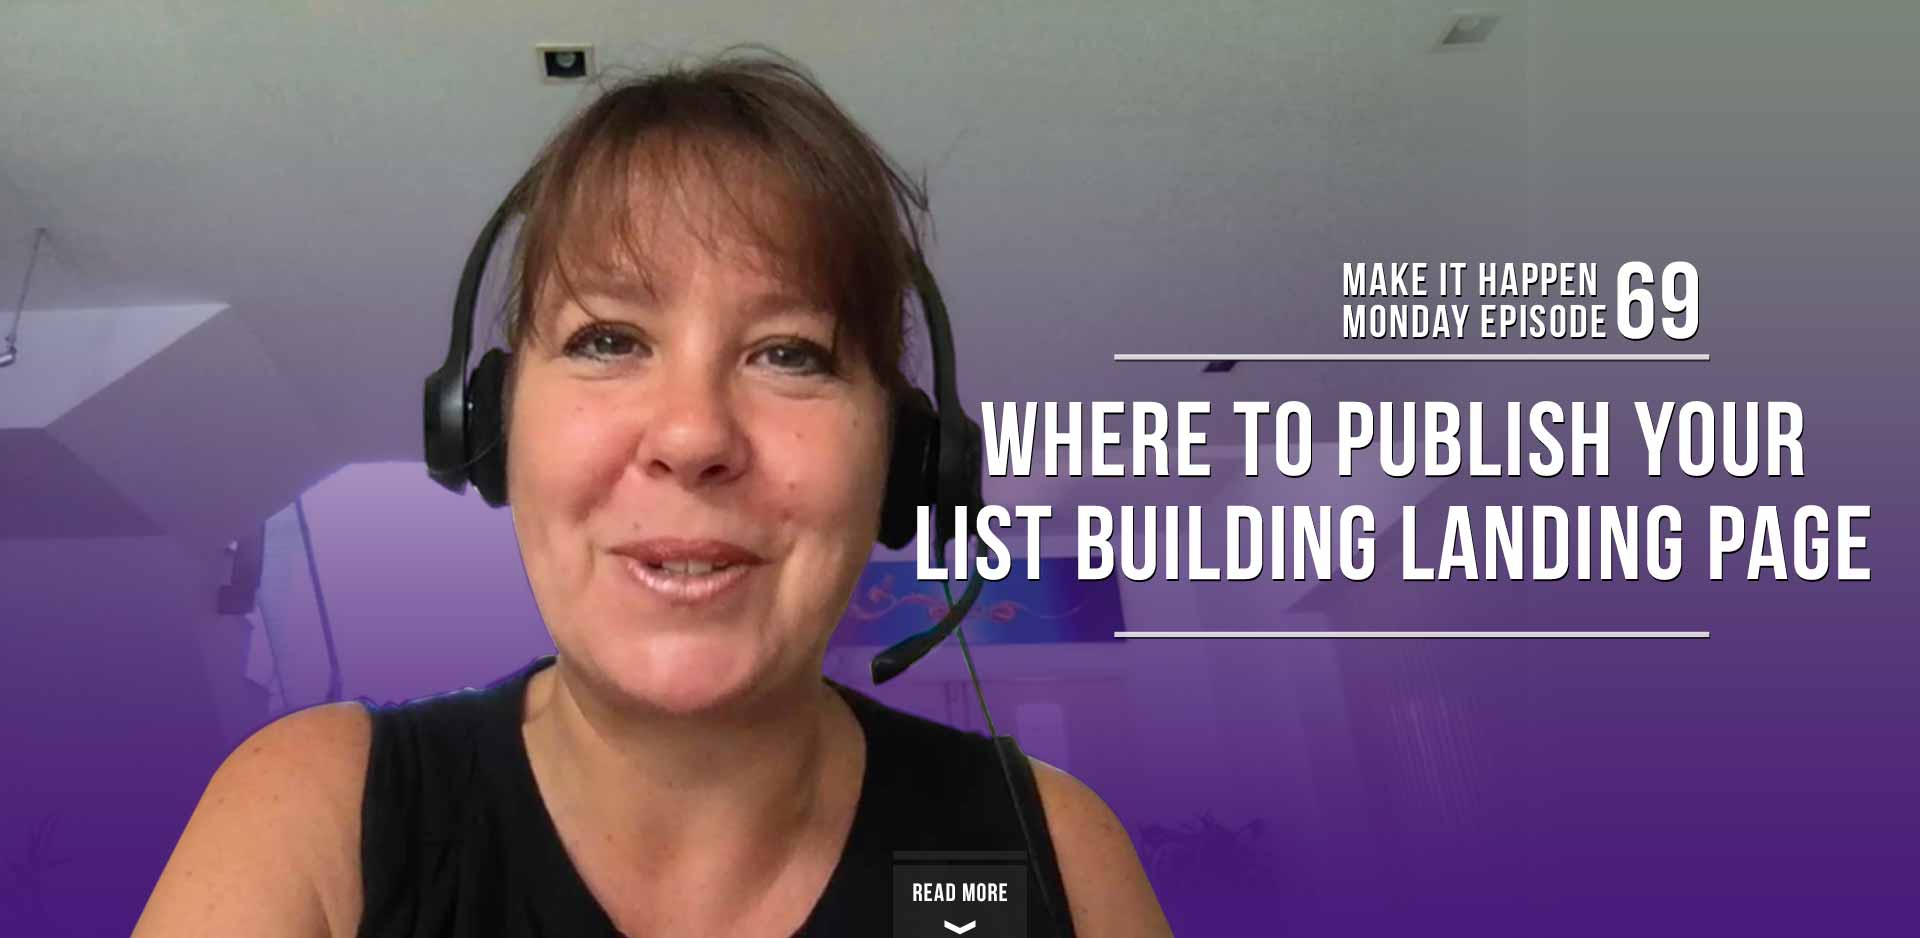 MIHM Ep69 - Where to Publish Your List Building Landing Page